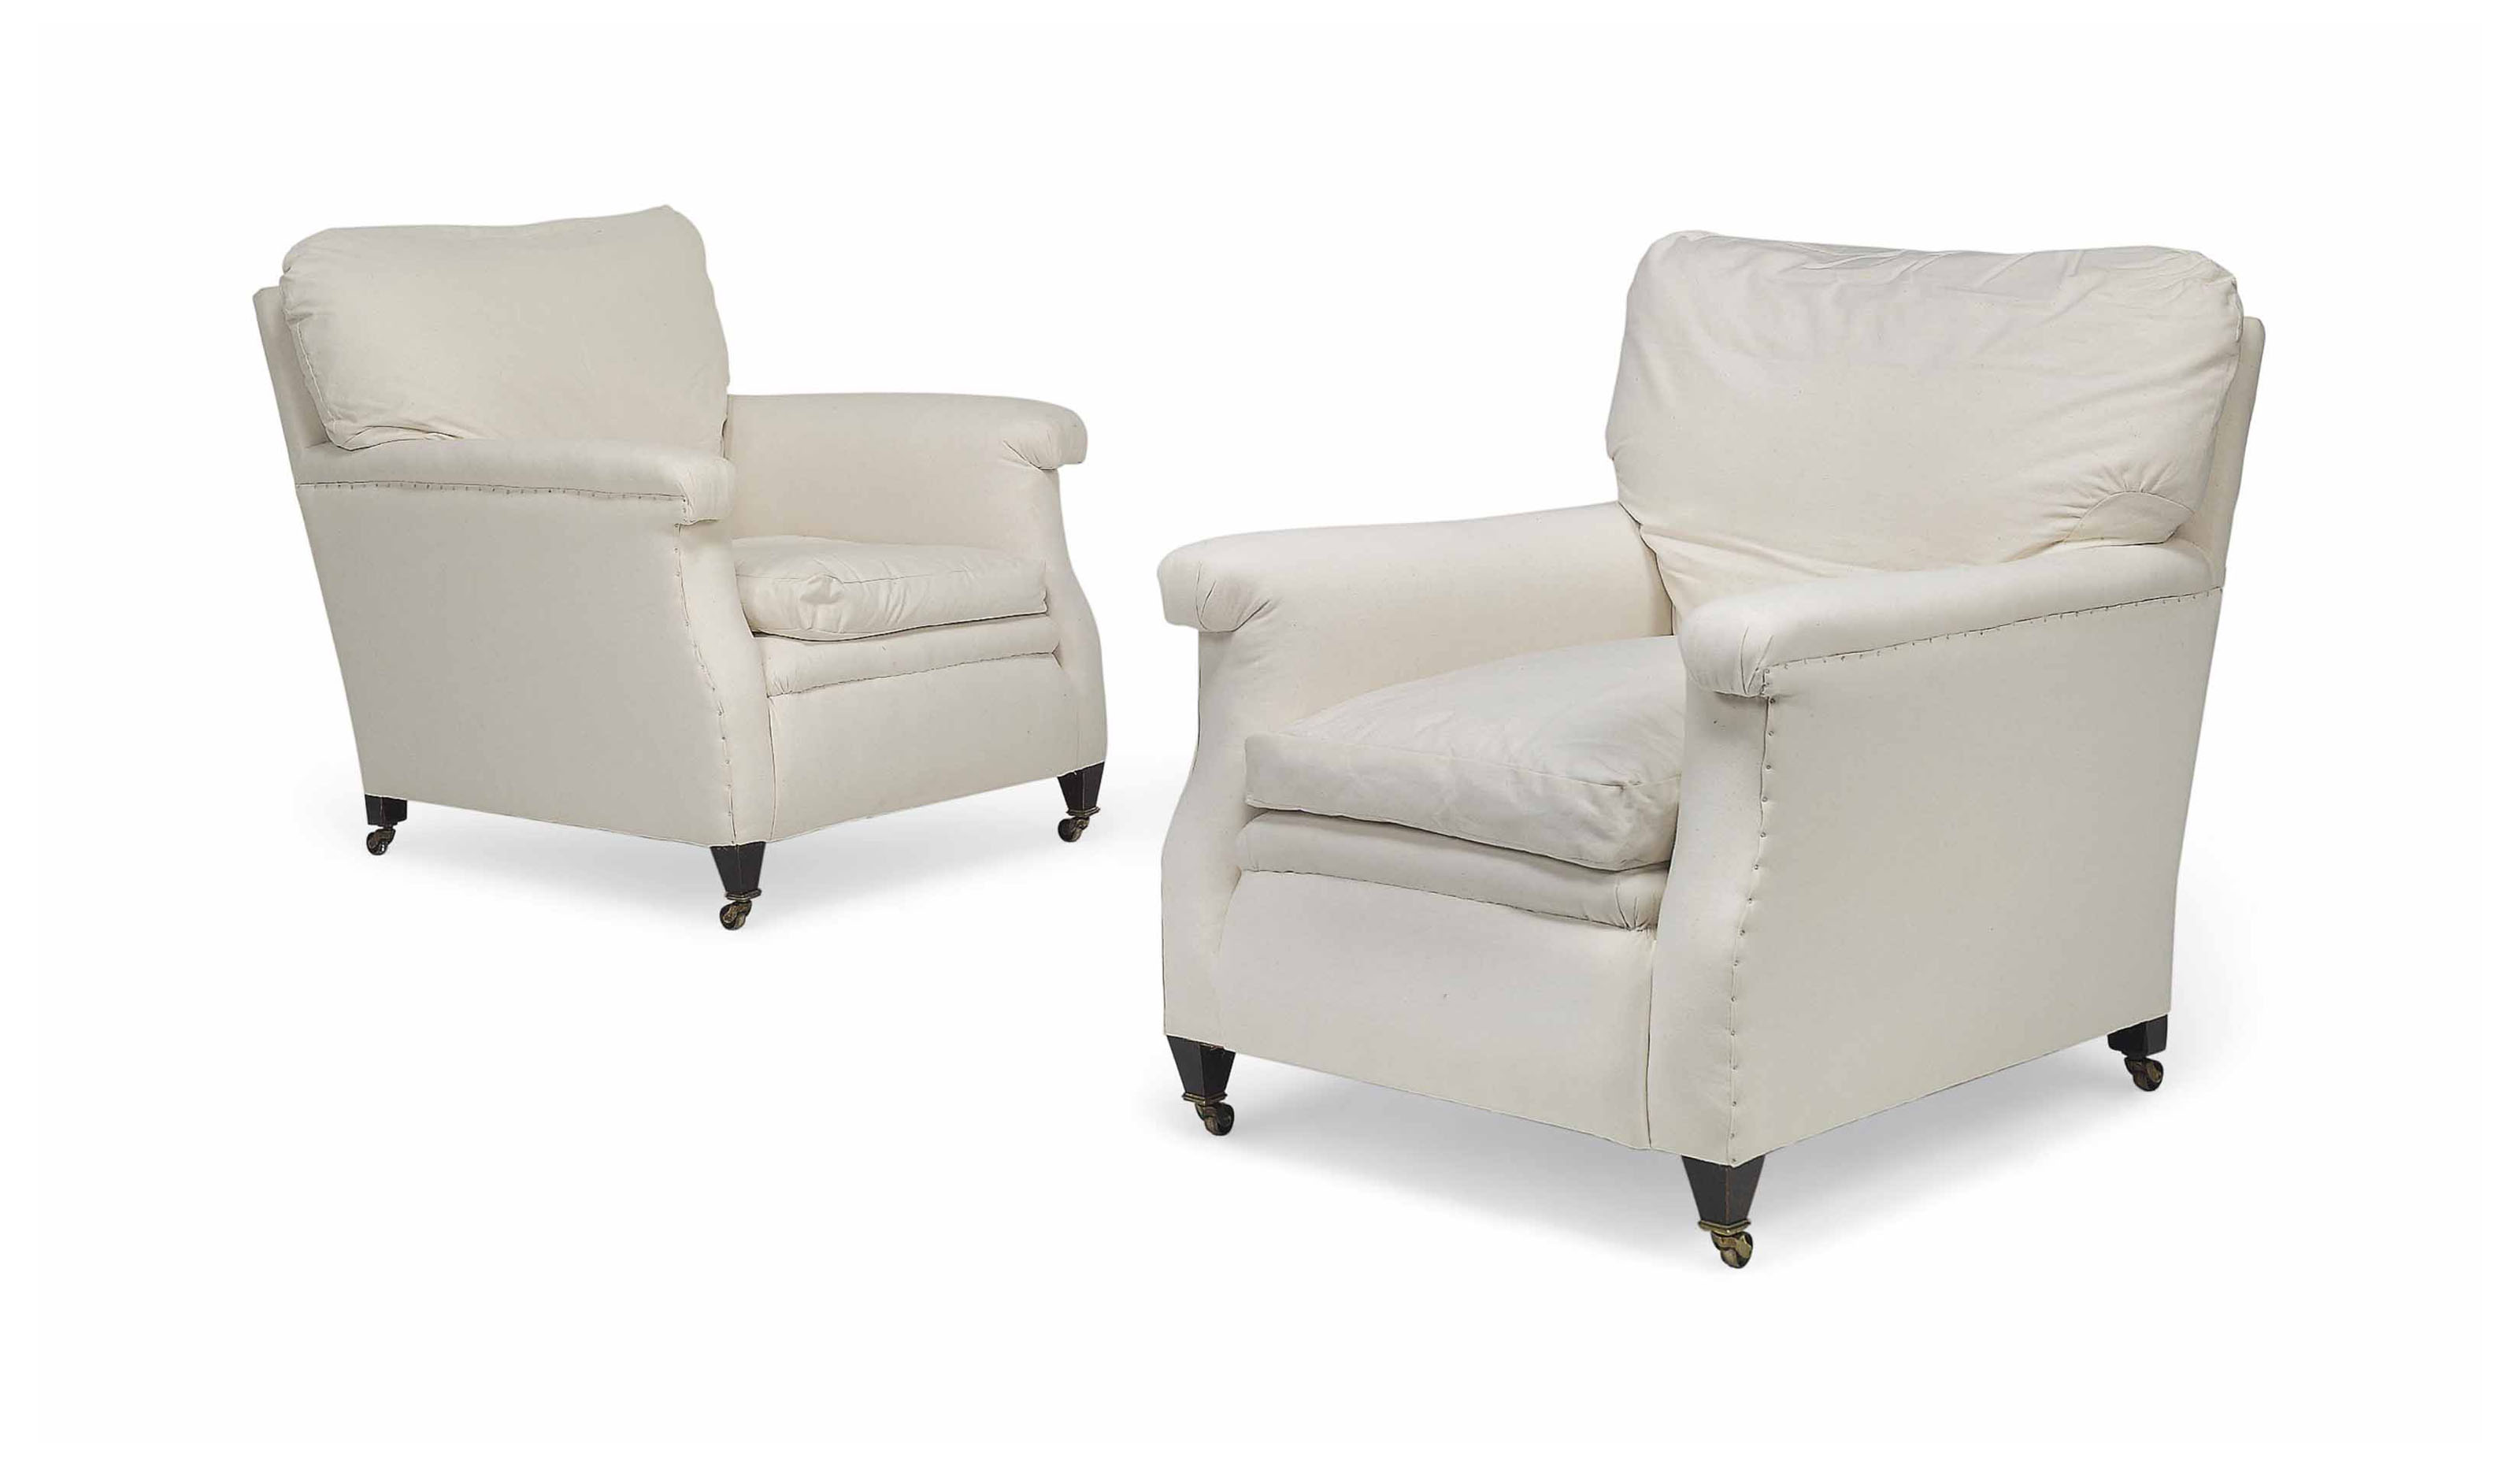 A PAIR OF LATE VICTORIAN HOWAR